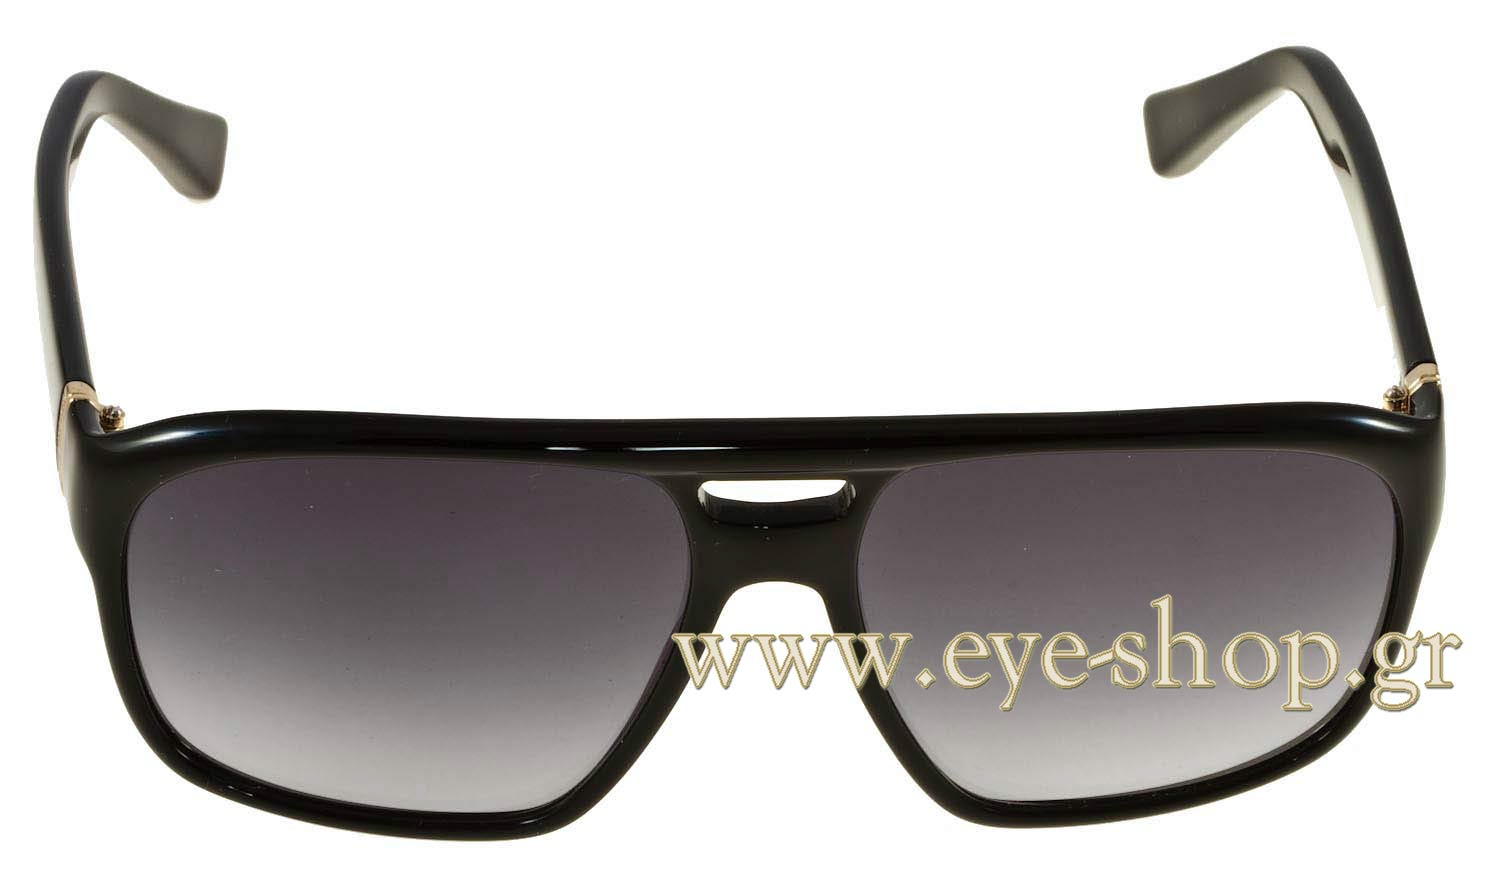 Ysl Sunglasses For Men 2